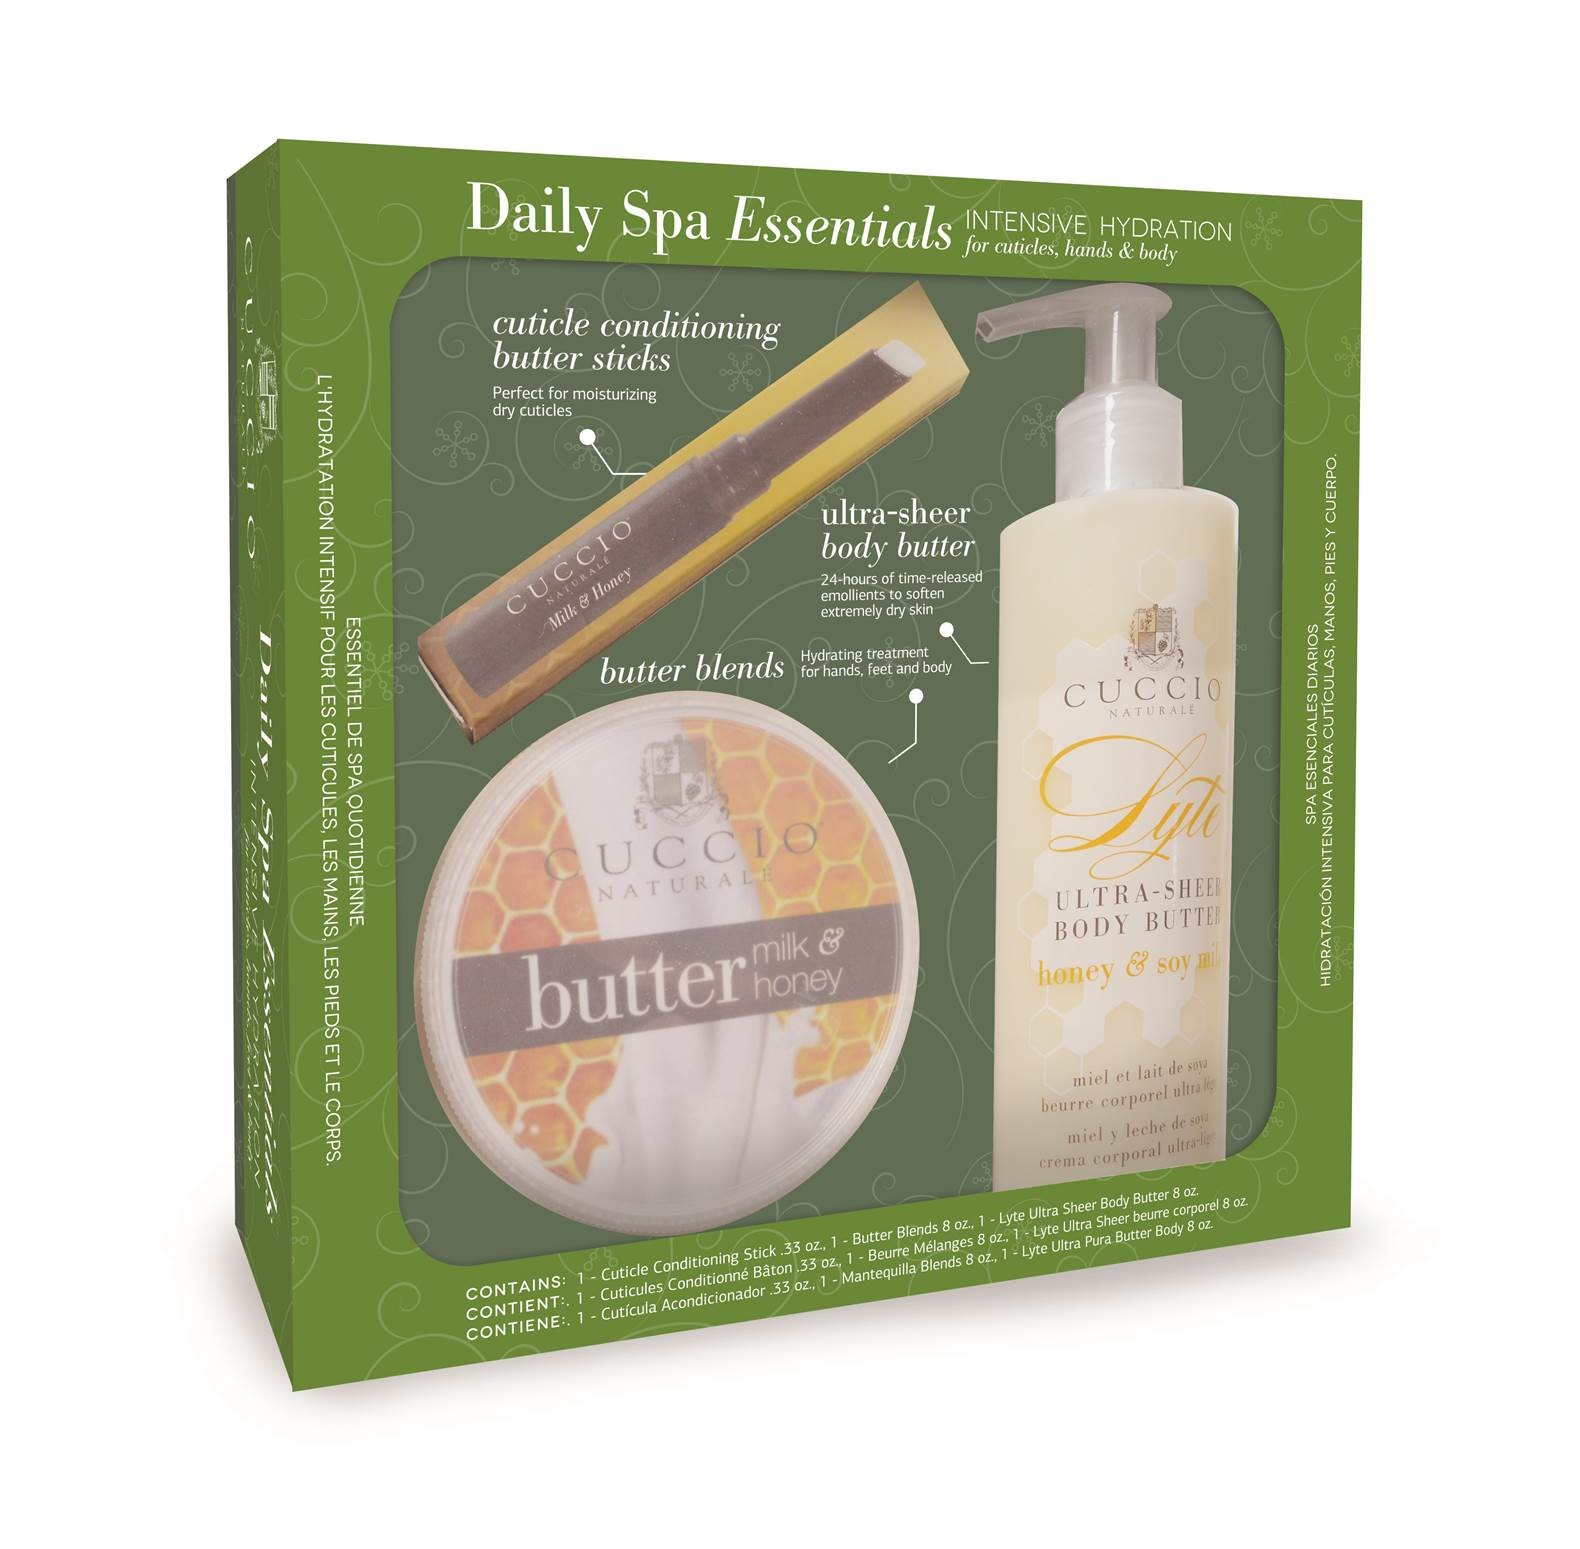 Cuccio Daily SPA Essentials Intensive Hydration For Cuticles, Hands & Body Honey and Milk (#3306)